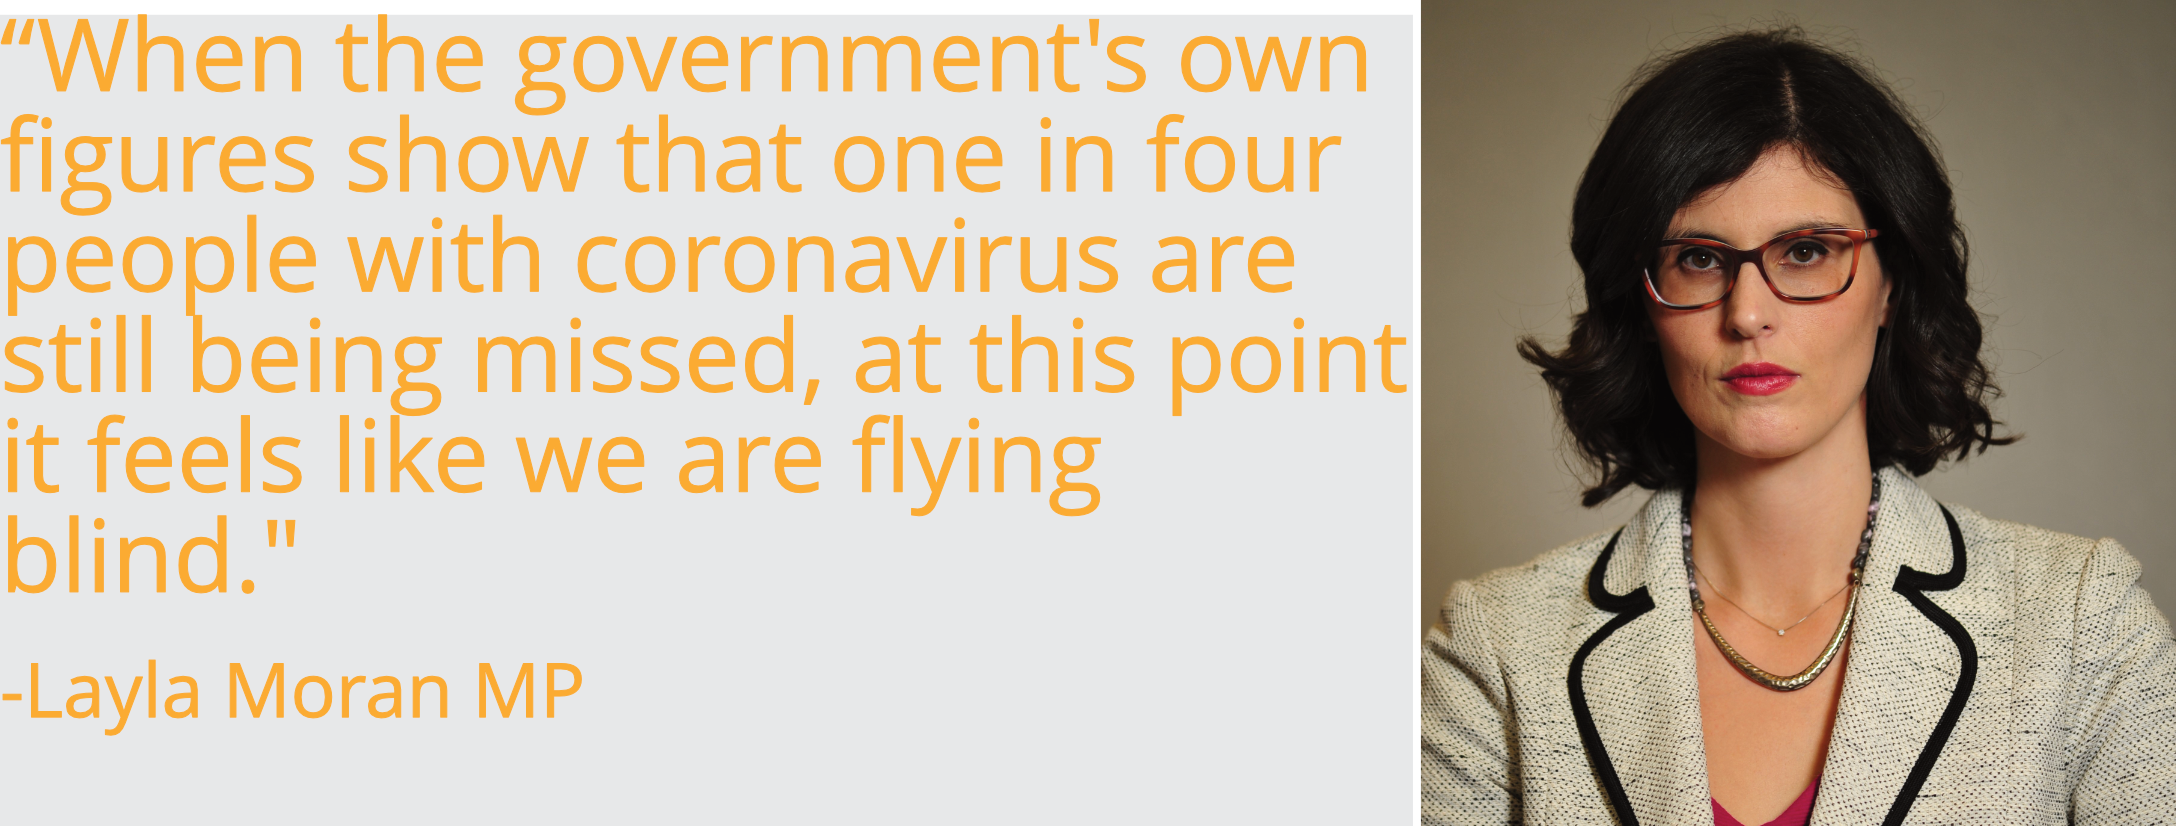 When the government's own figures show that one in four people with coronavirus are still being missed, at this point it feels like we are flying blind.